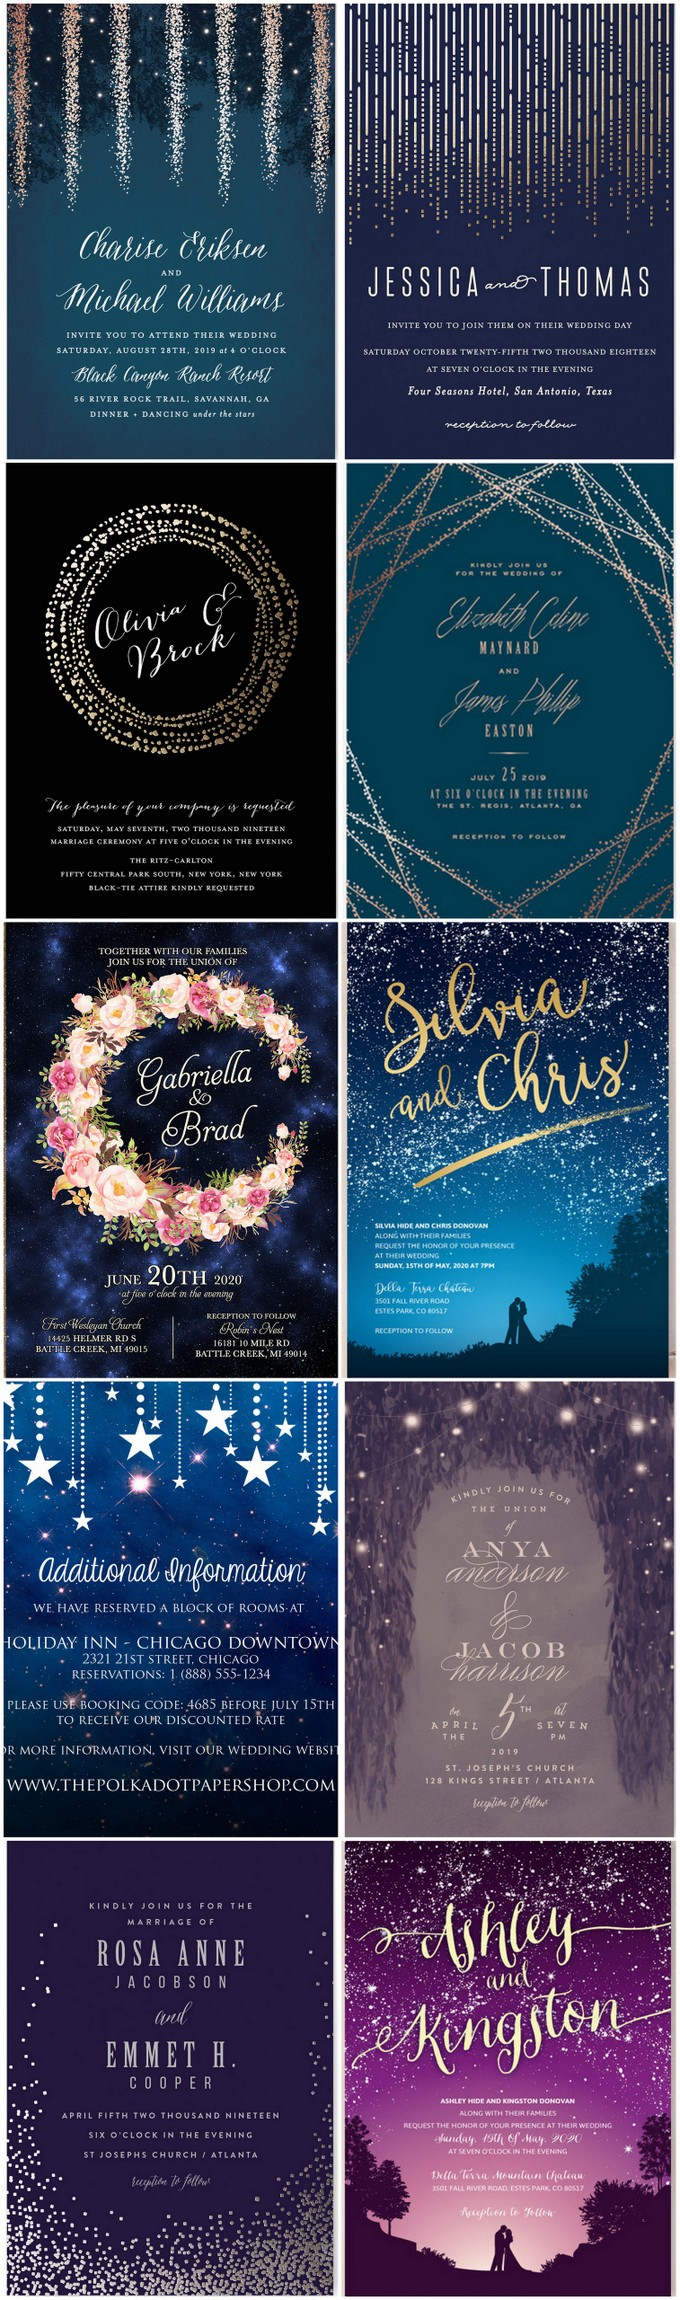 17 Awesome Starry Night Wedding Invitations